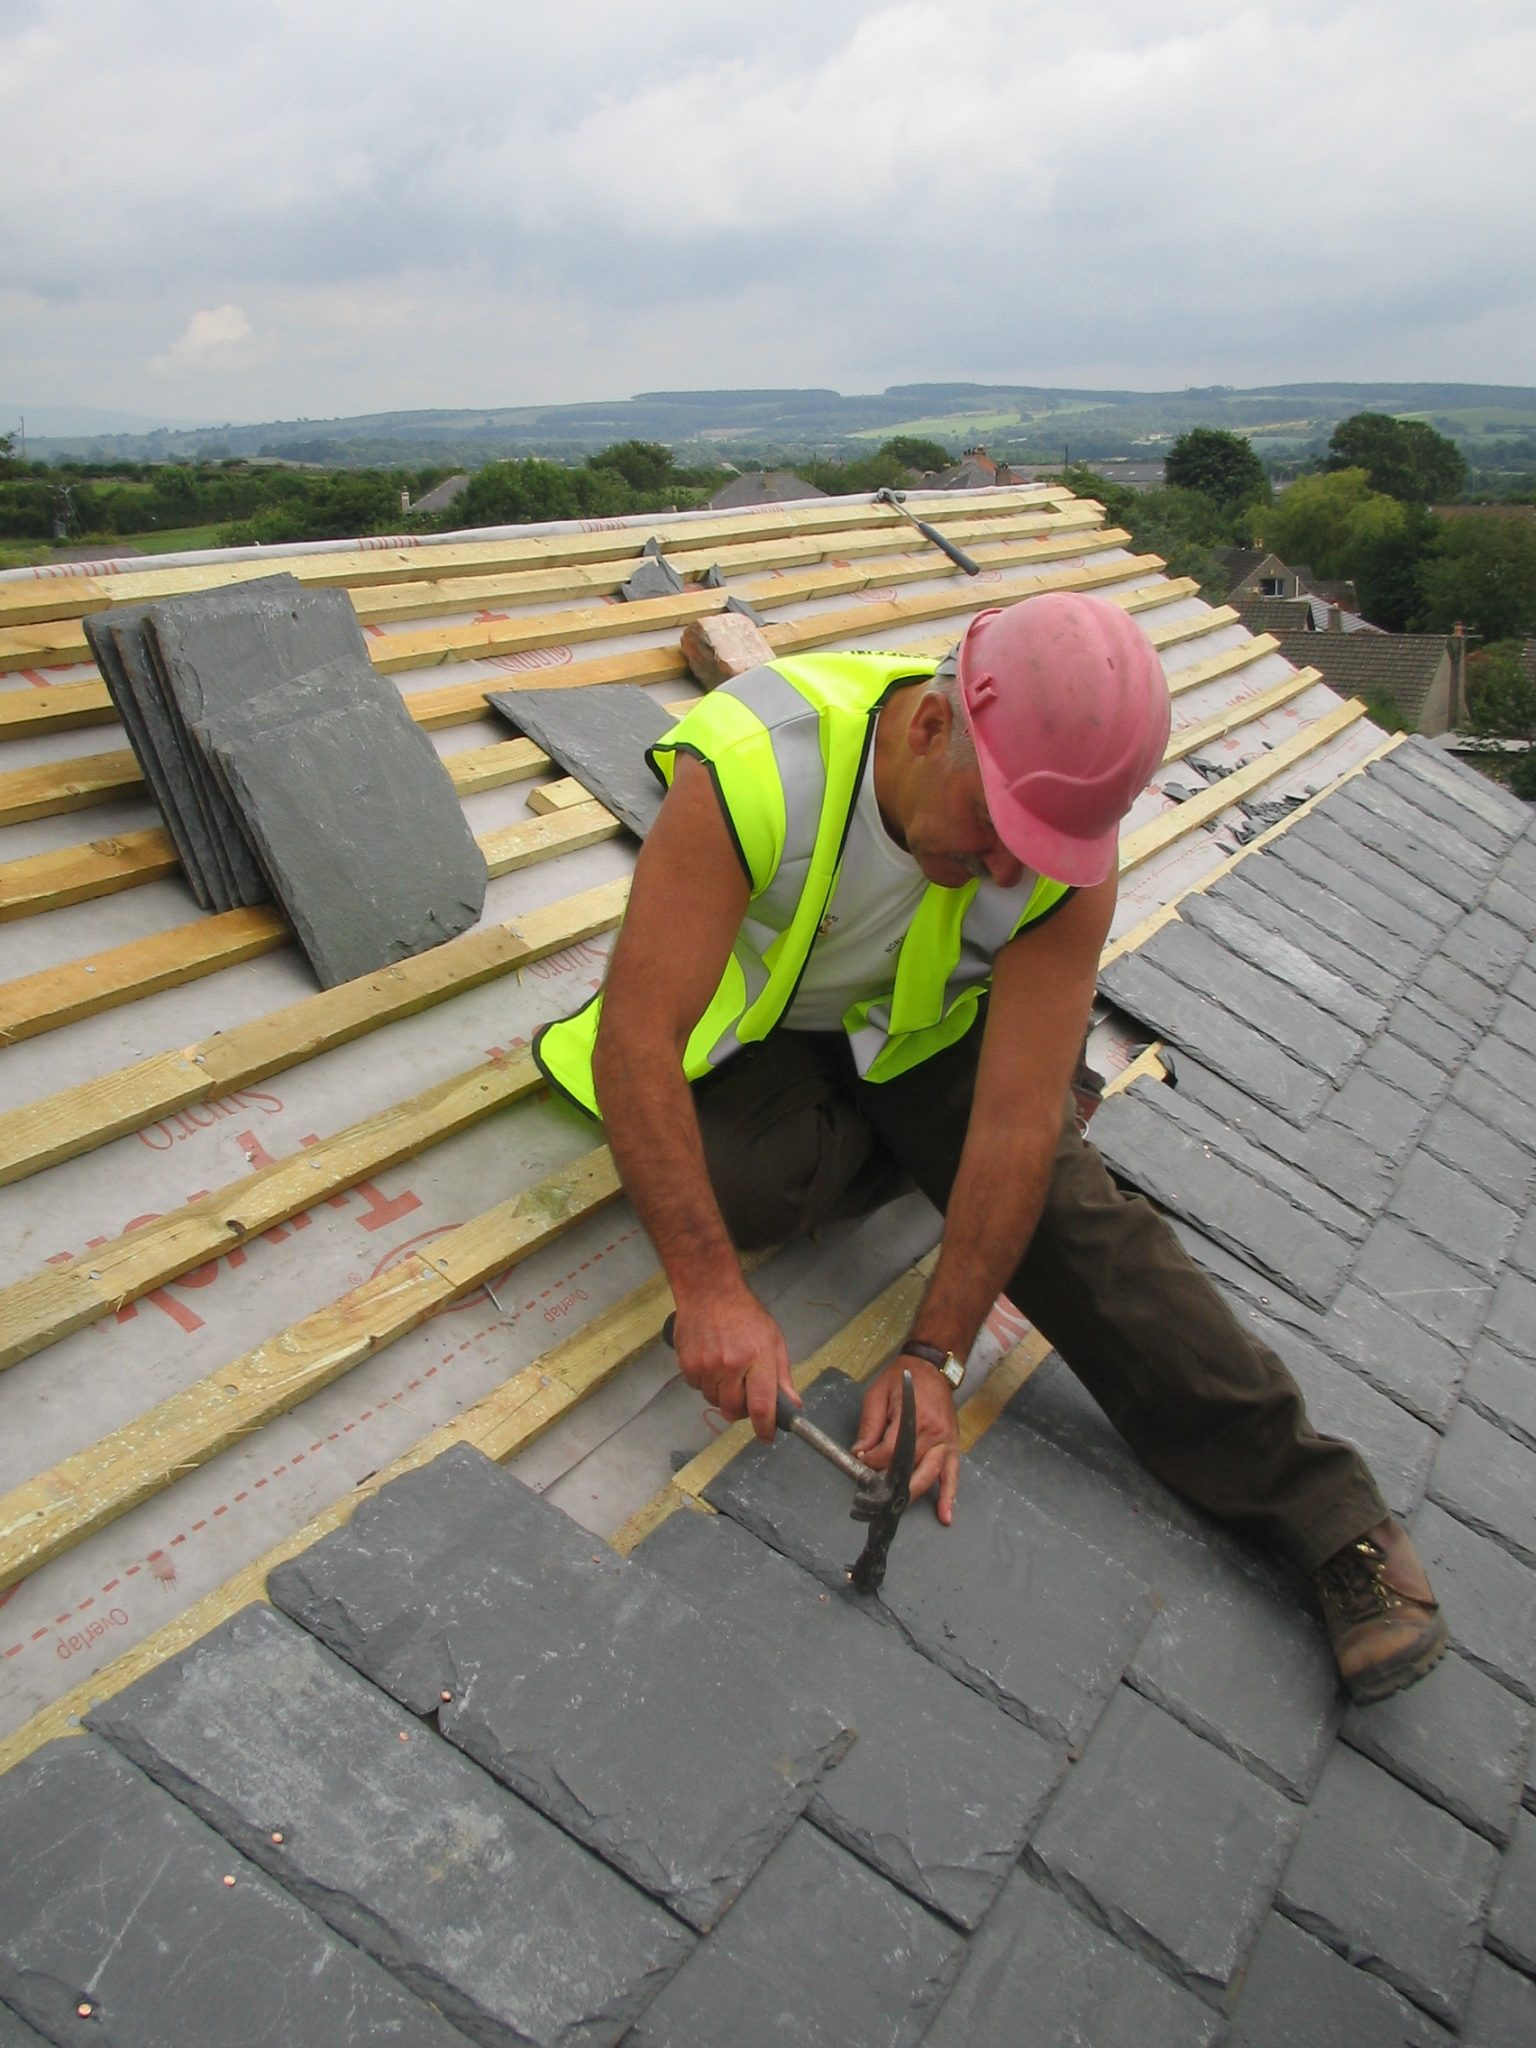 Man pulling shingles on a roof